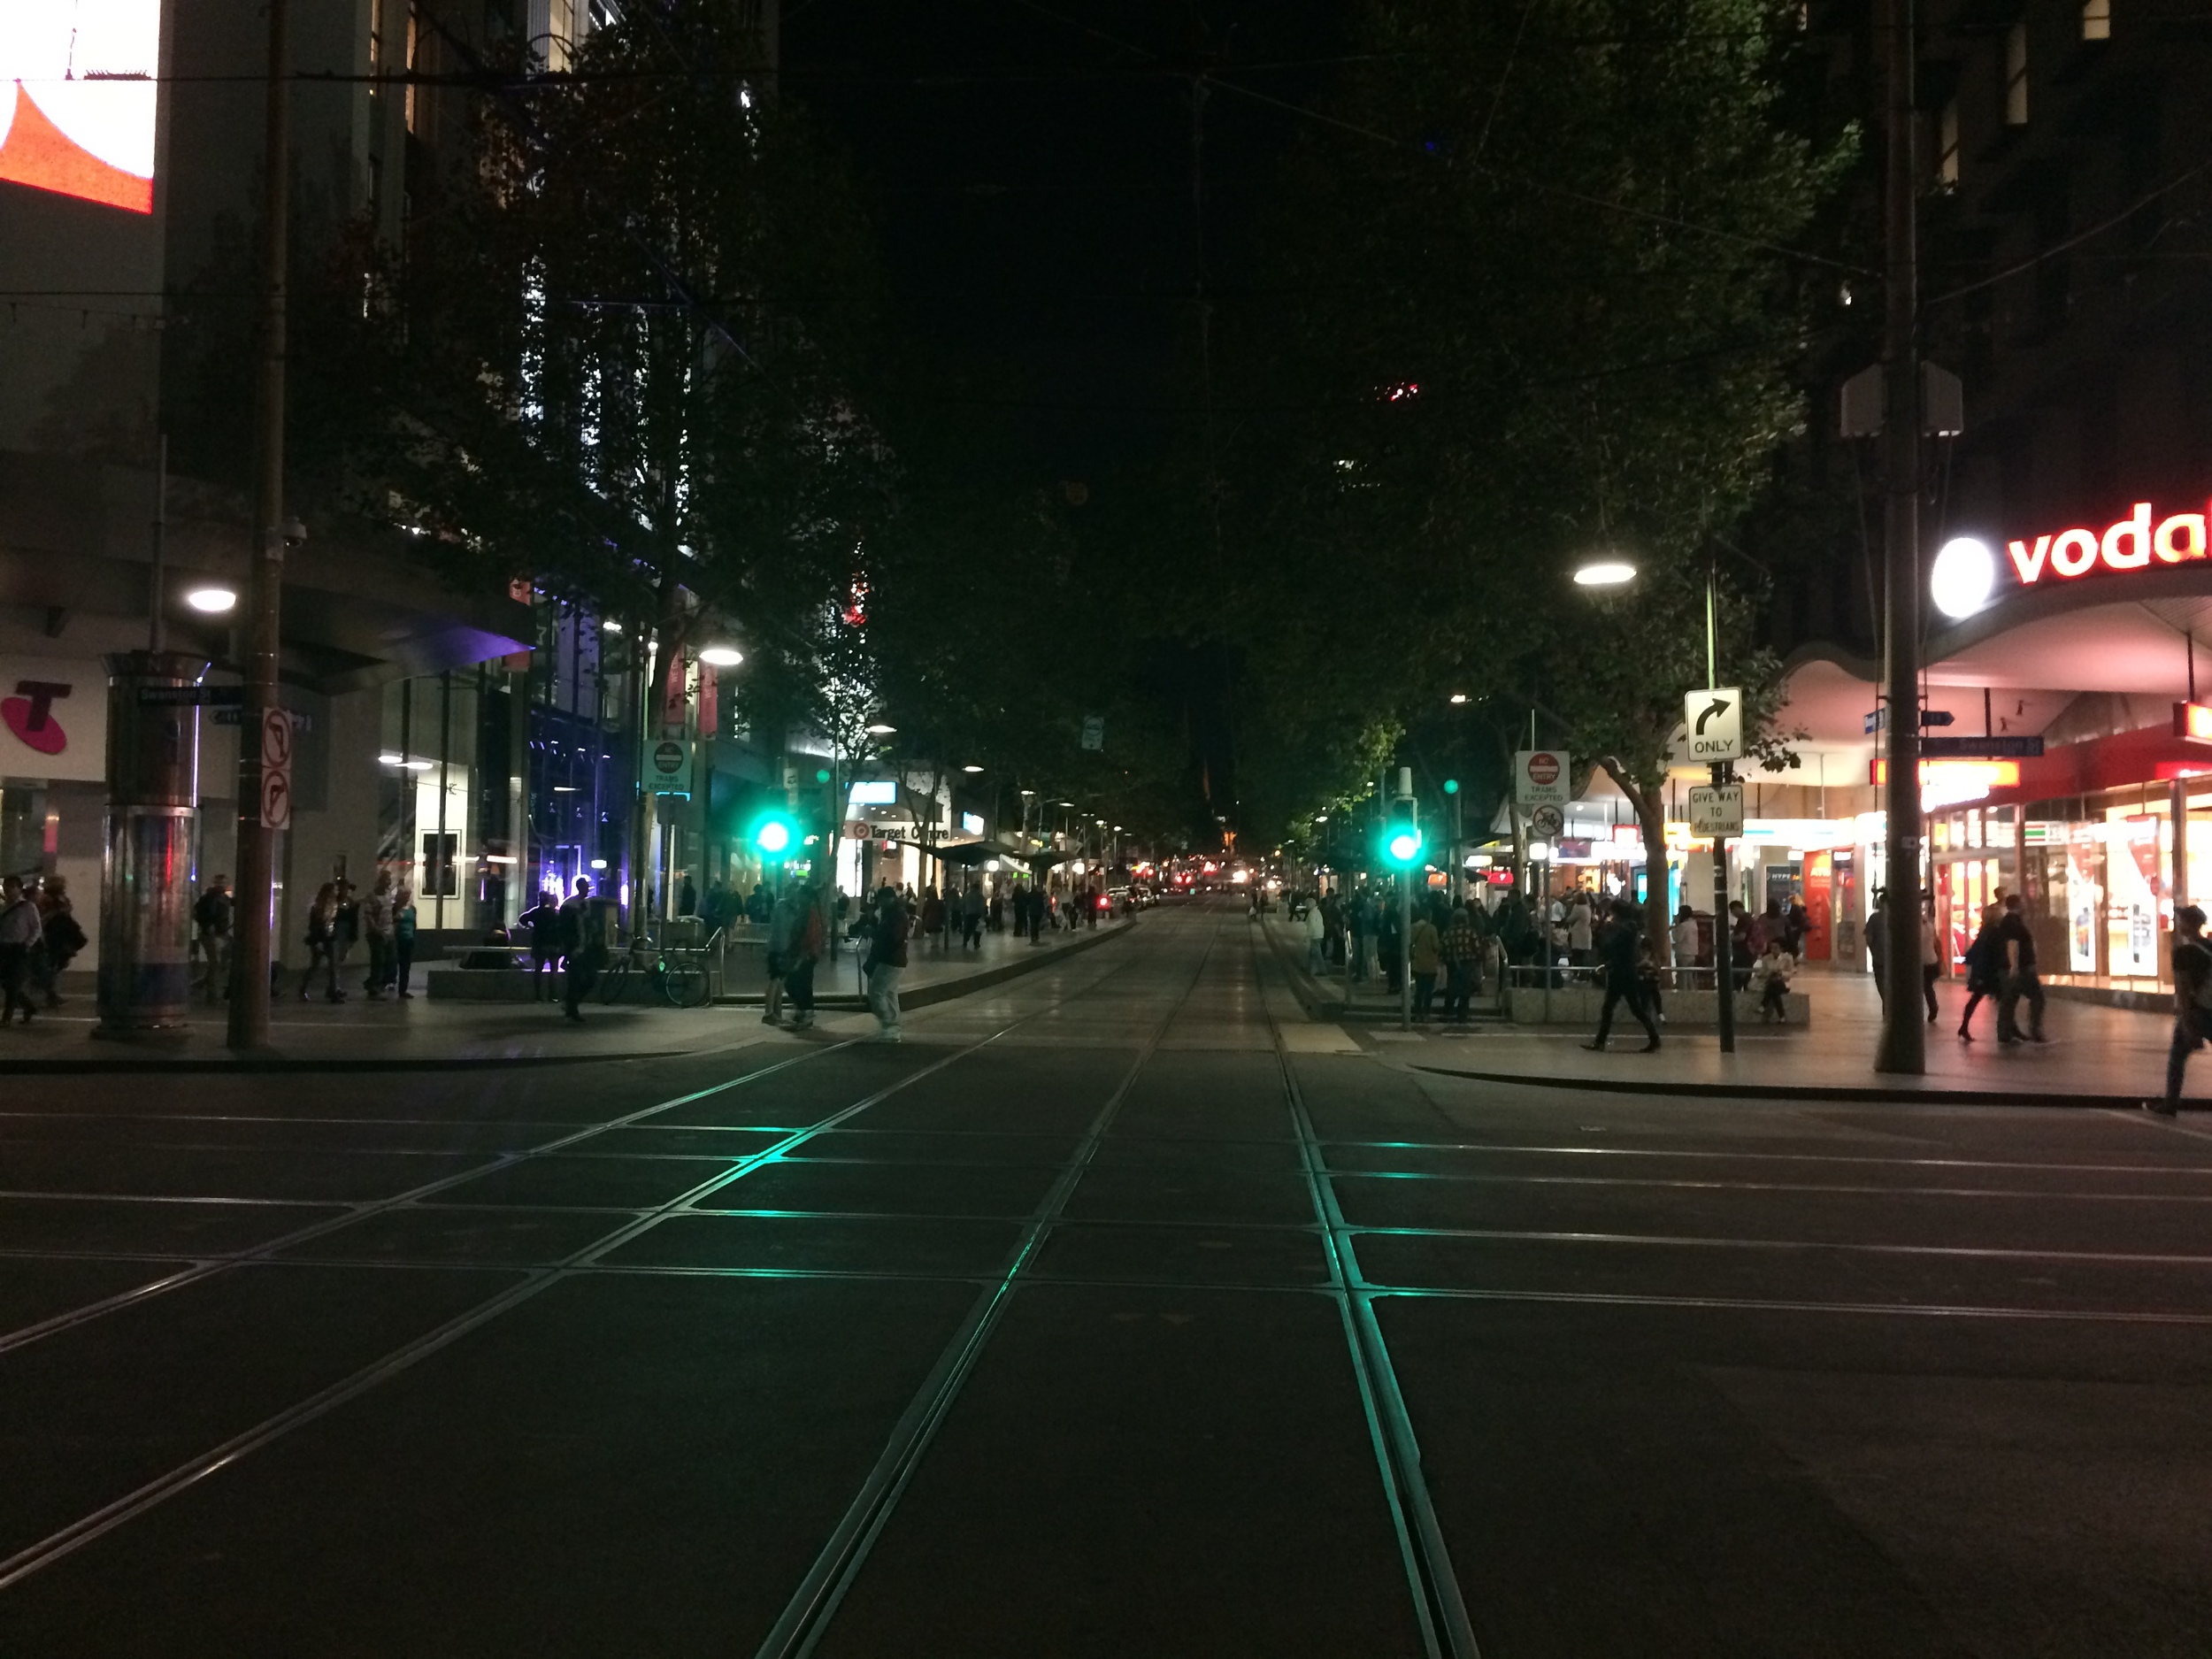 I'm loving the Melbourne nights so far.